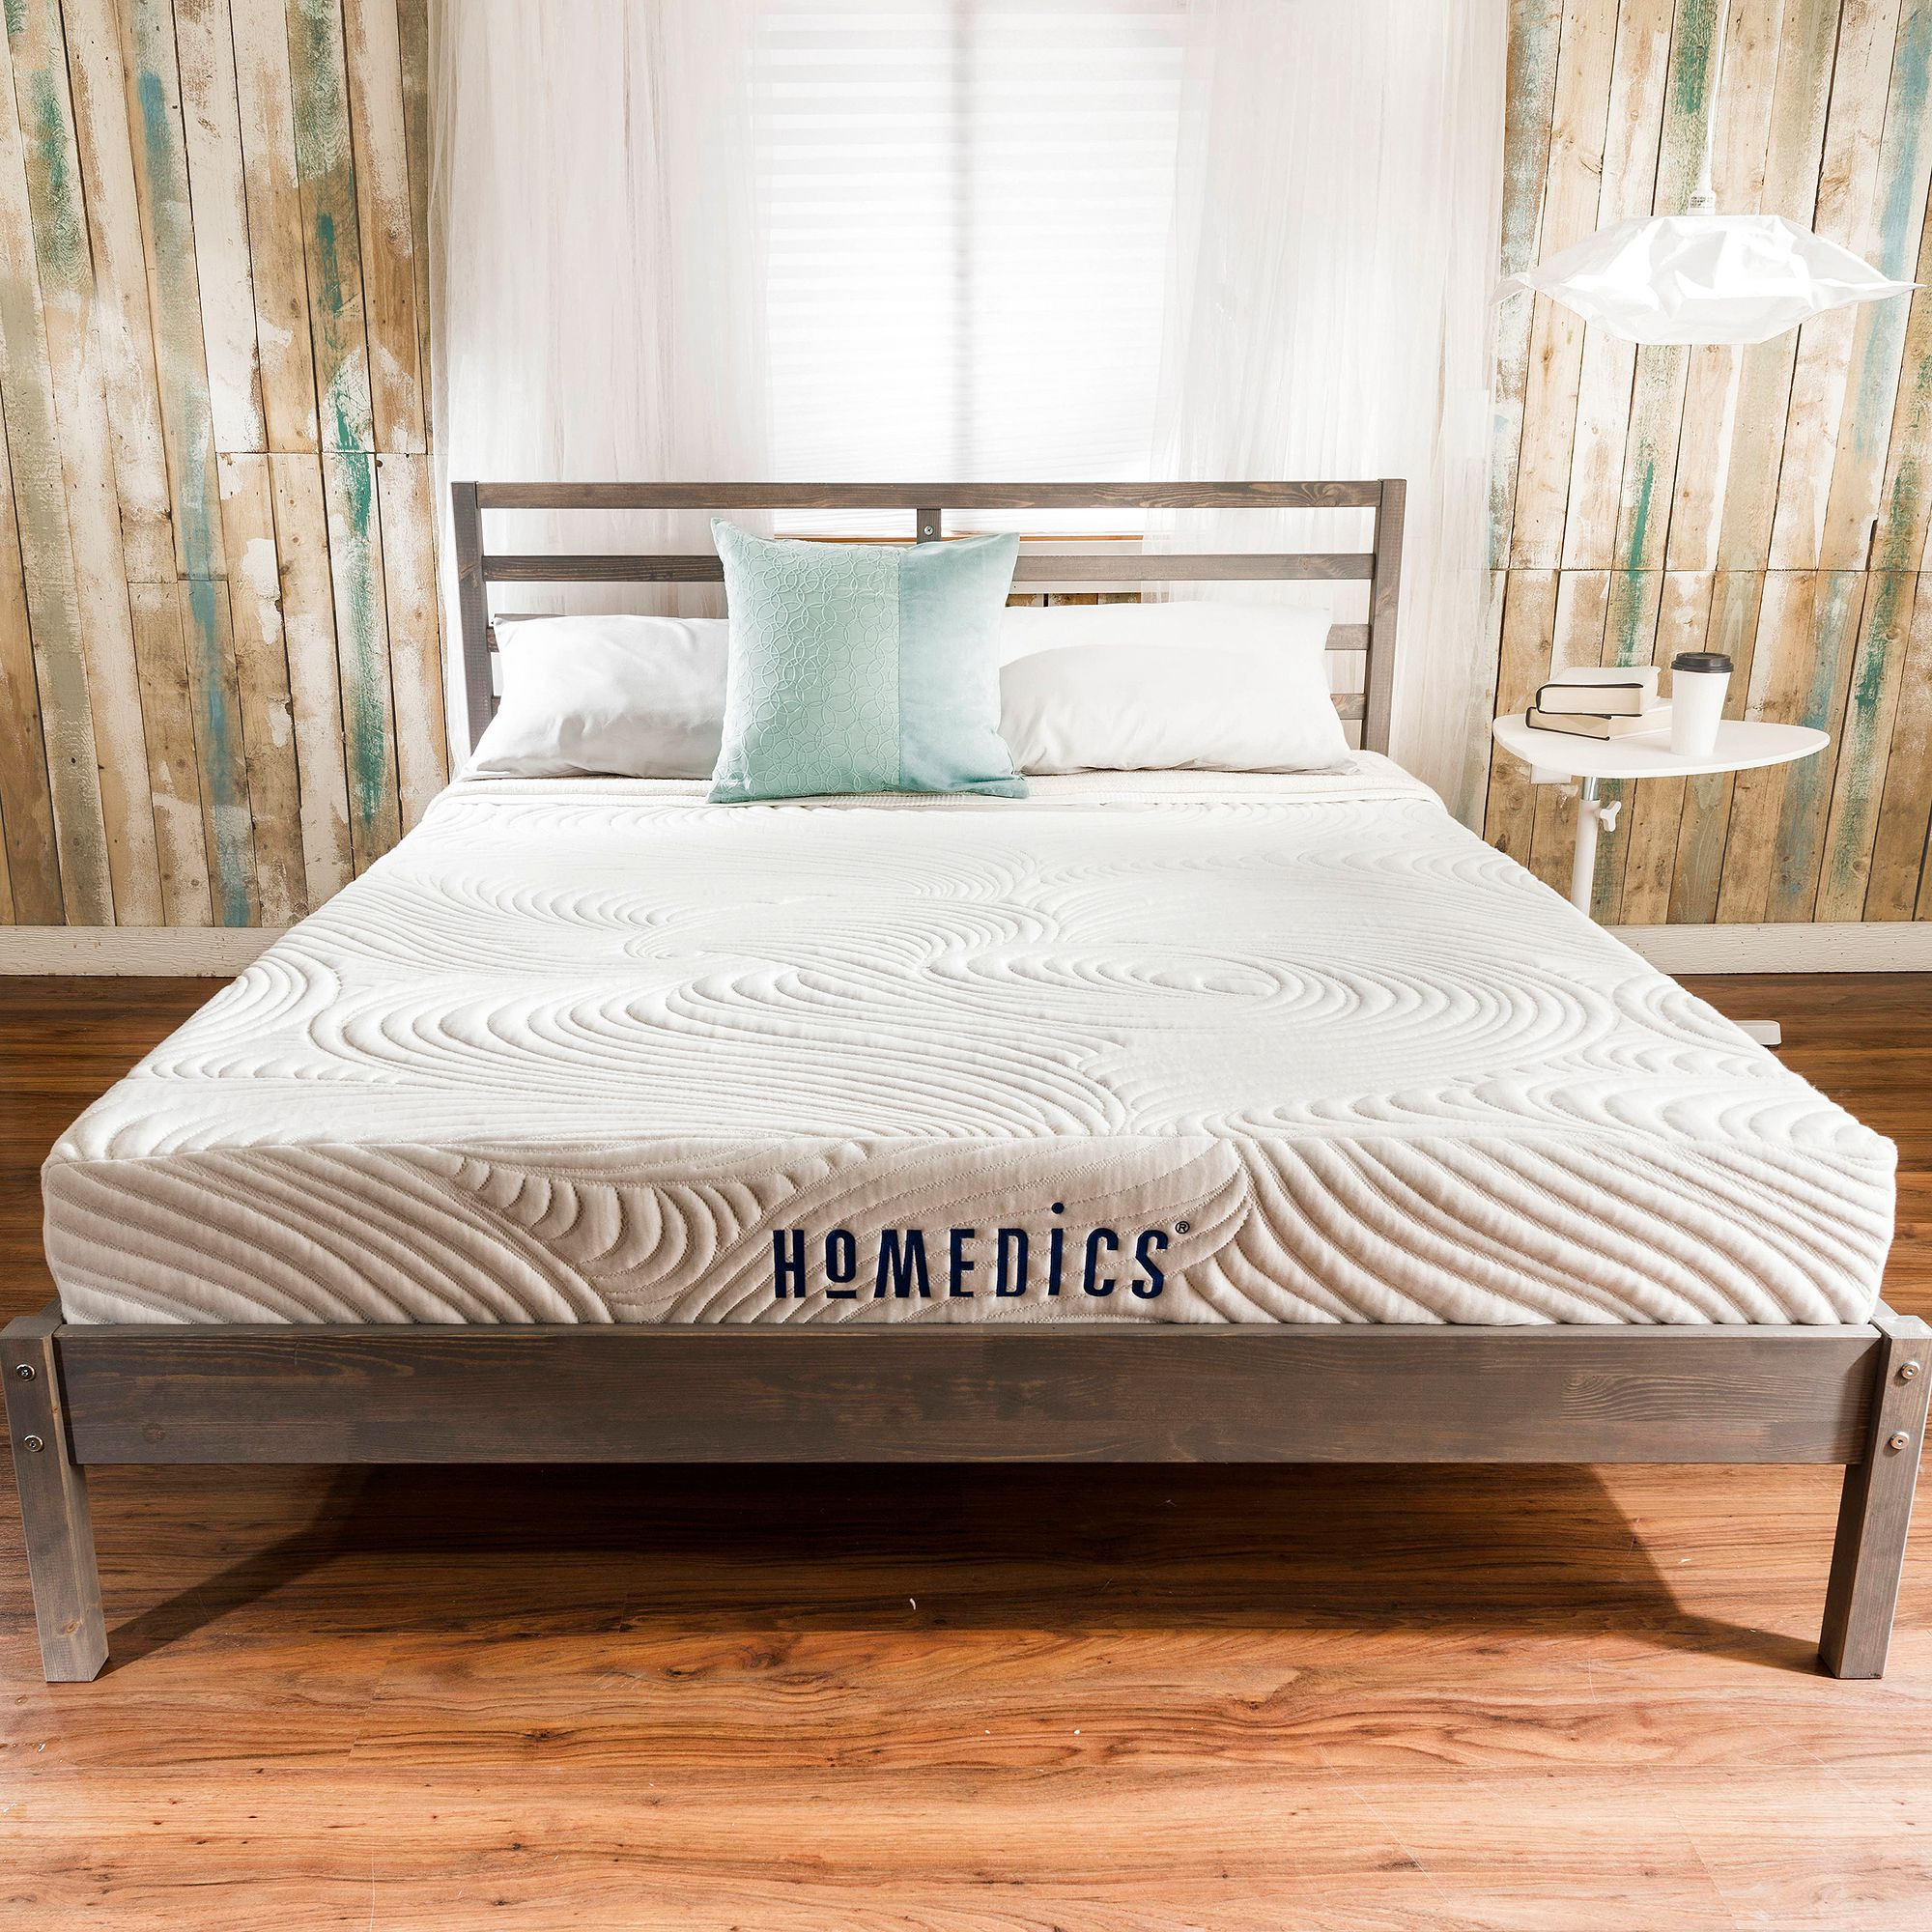 "HoMedics Revive 9"" Gel Memory Foam Mattress, Multiple Sizes"